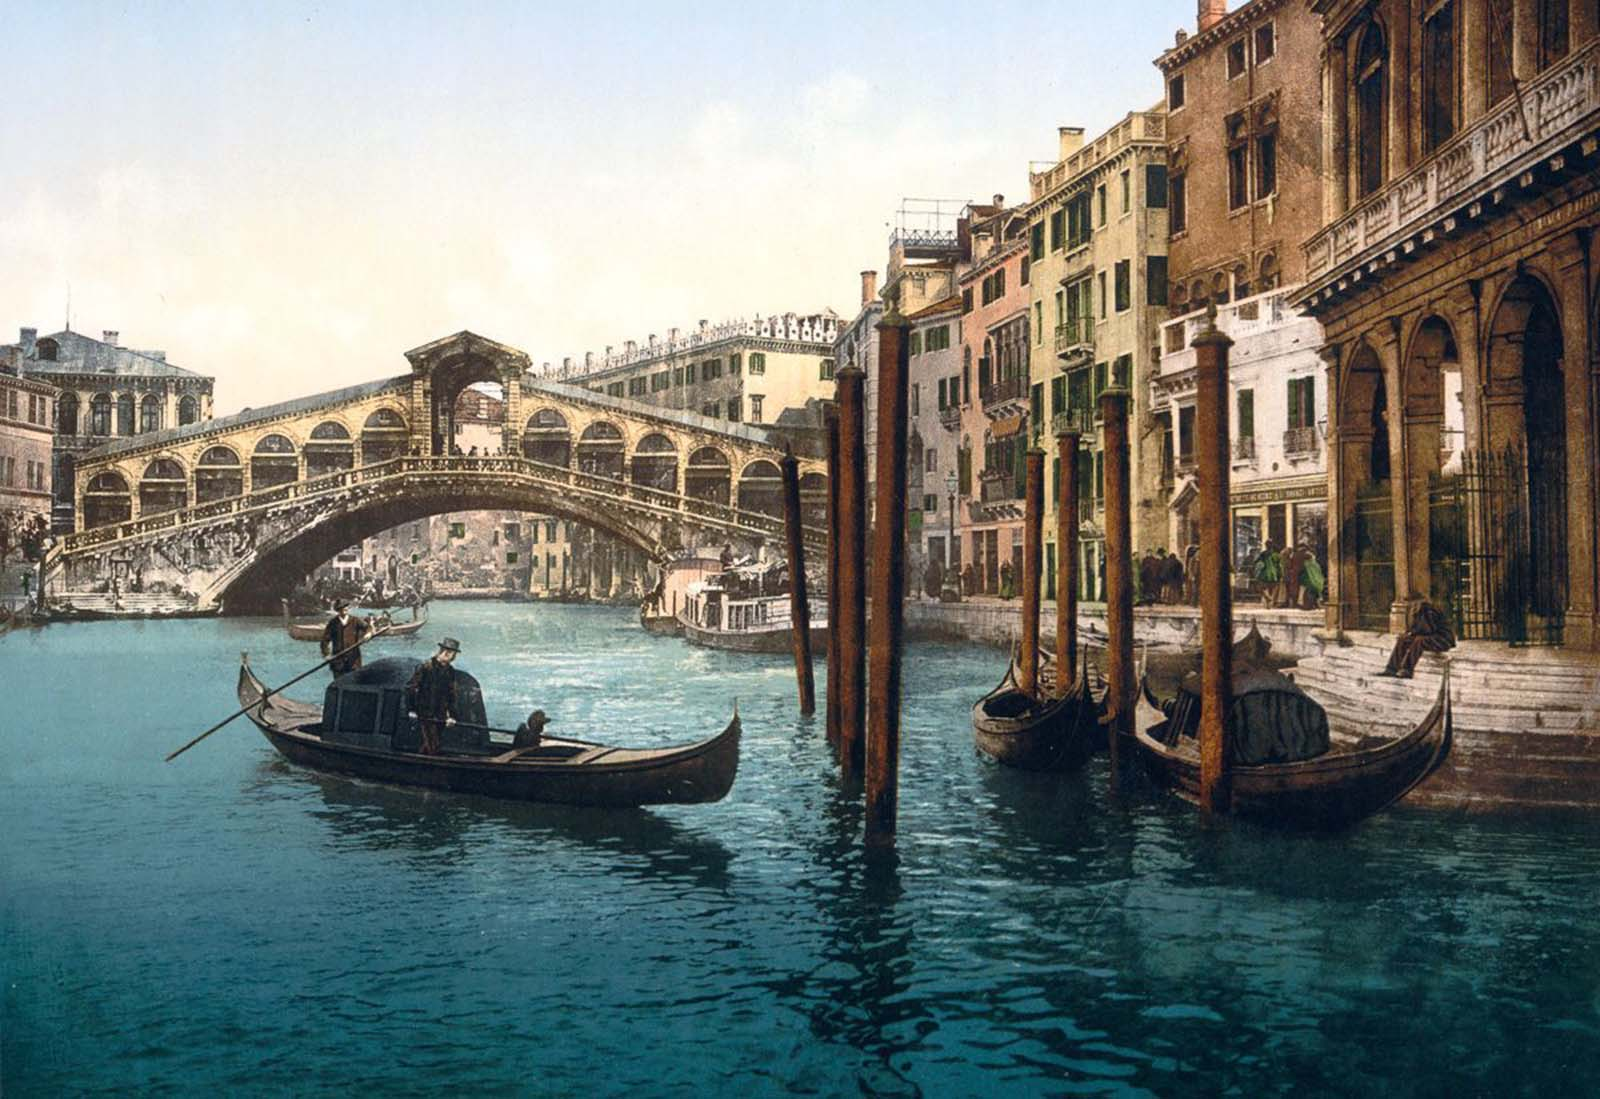 venice-in-beautiful-old-color-images-1890_18.jpg